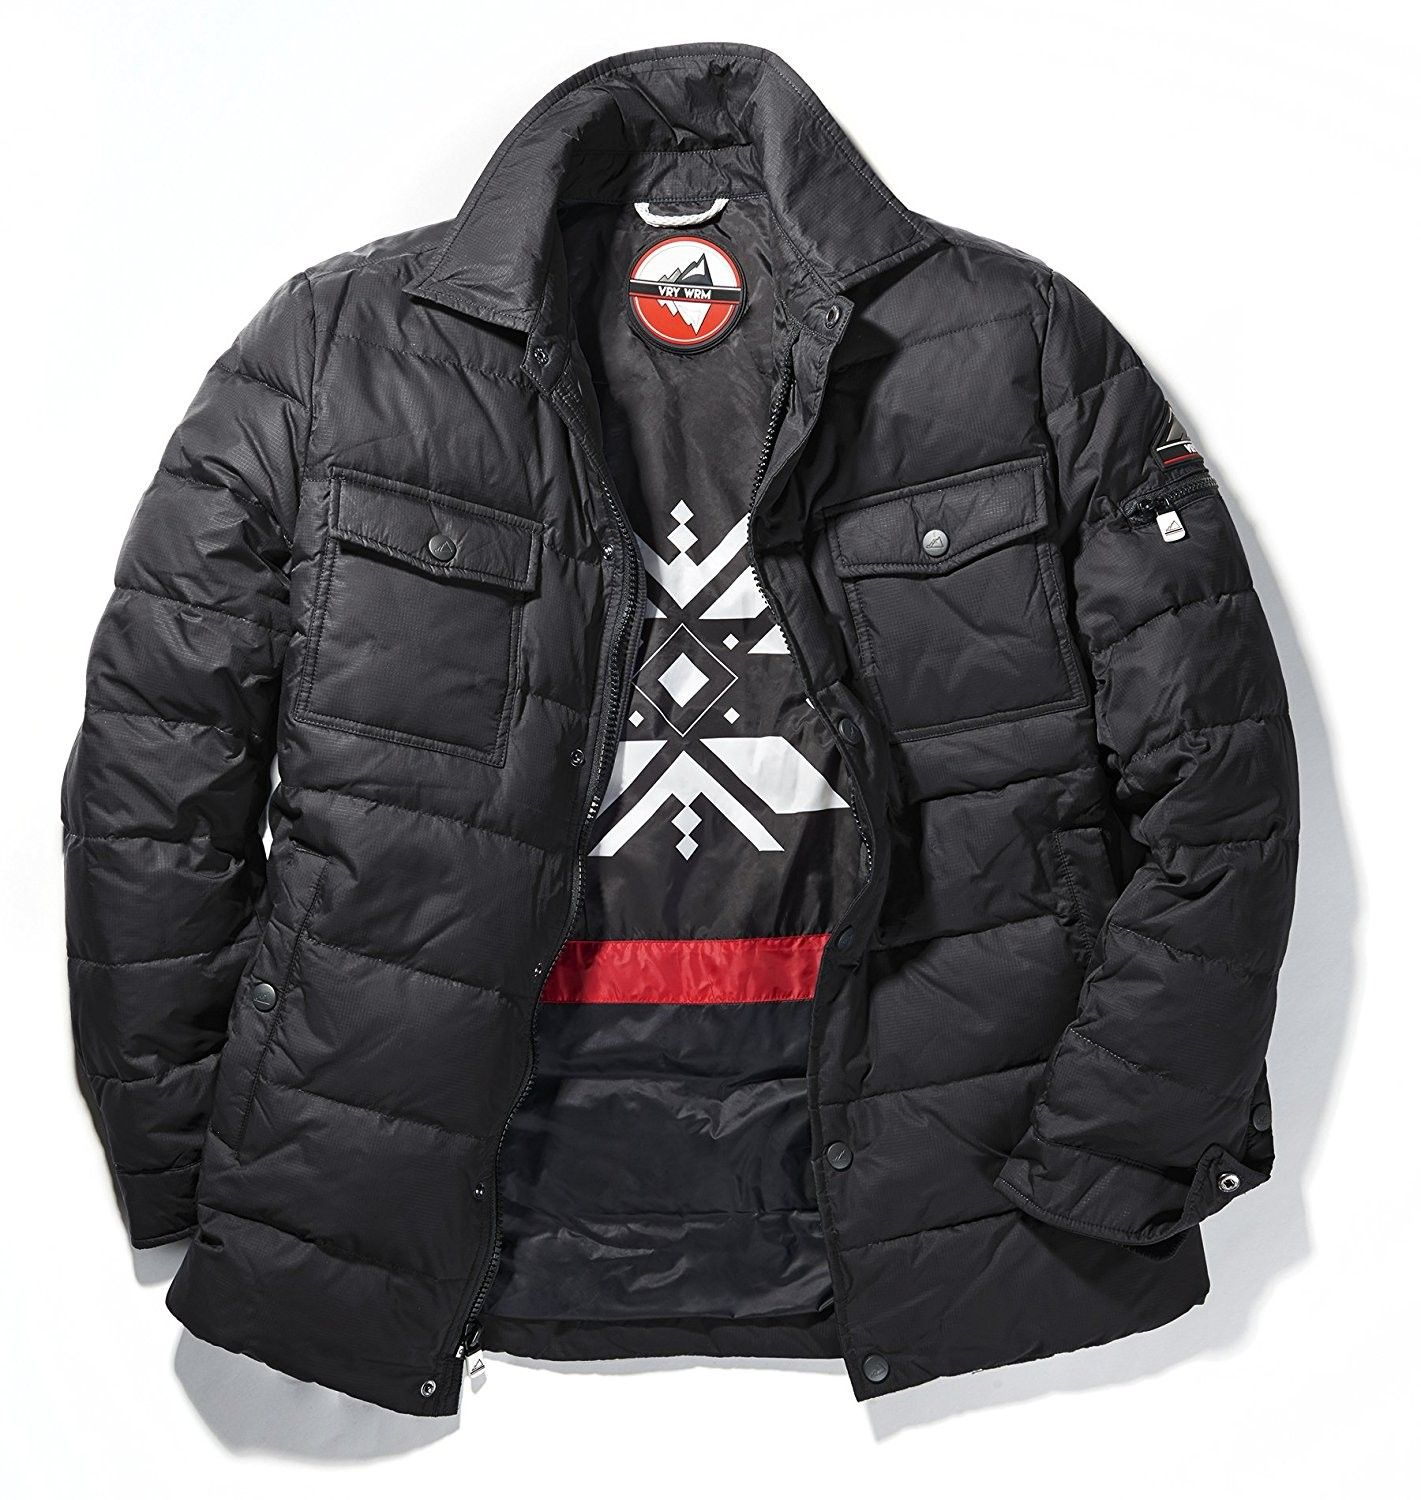 Men's Chill Down Quilted CPO Shirt Jacket - Black - CG17Y7INM67 | Mens  outfits, Jackets, Shirt jacket